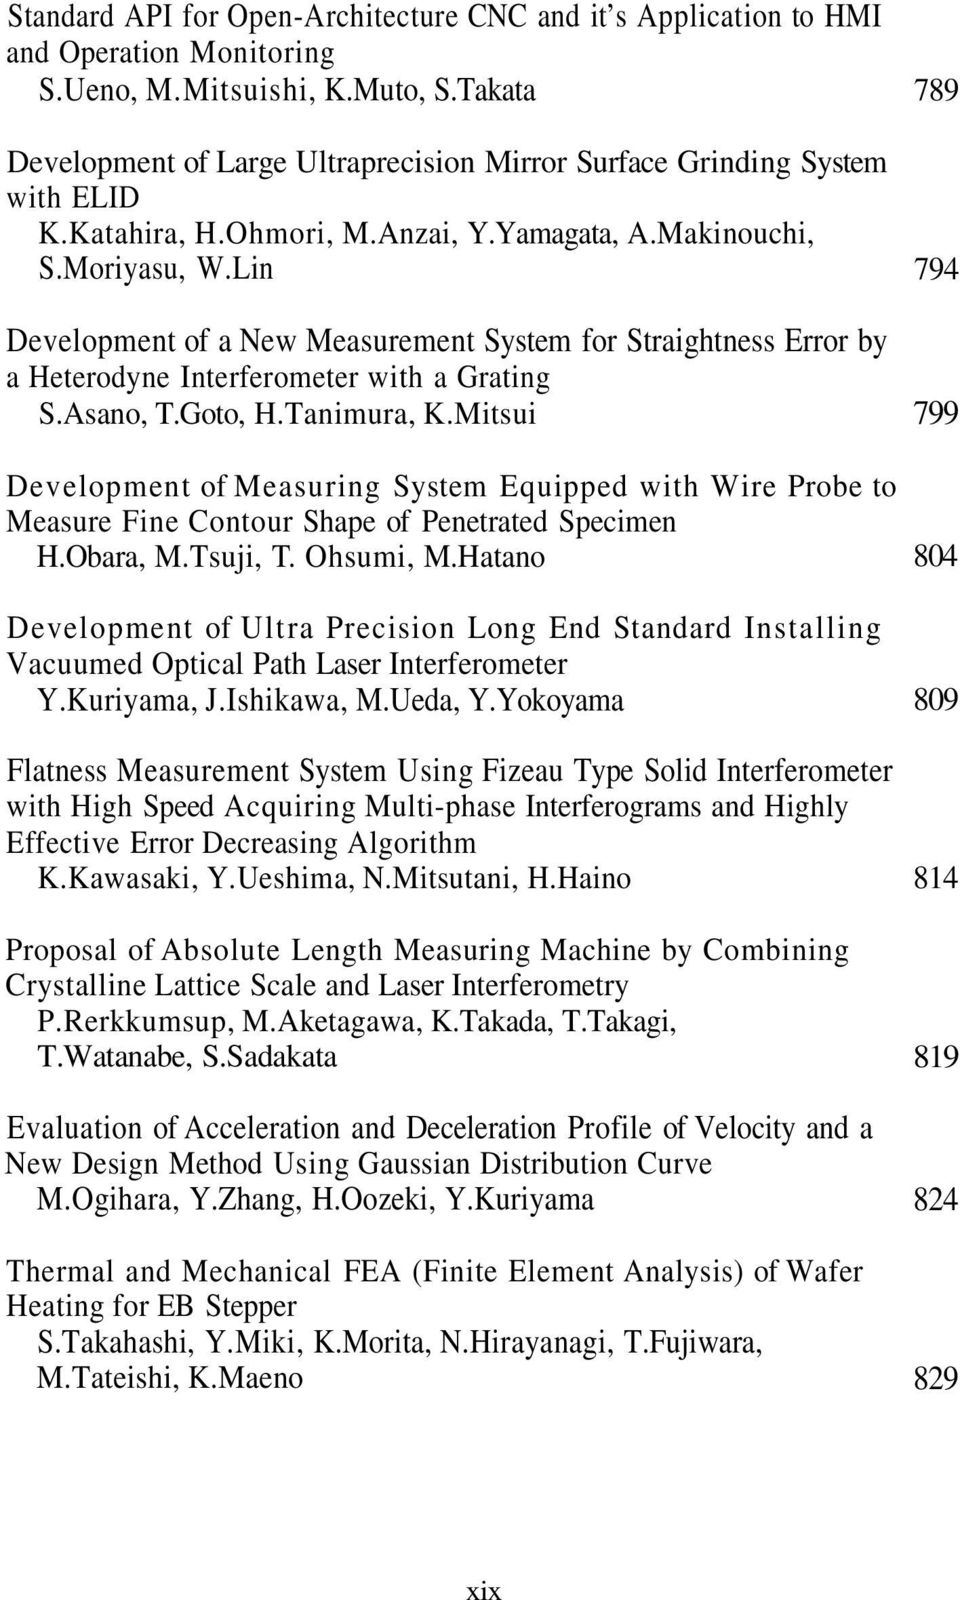 Lin Development of a New Measurement System for Straightness Error by a Heterodyne Interferometer with a Grating S.Asano, T.Goto, H.Tanimura, K.